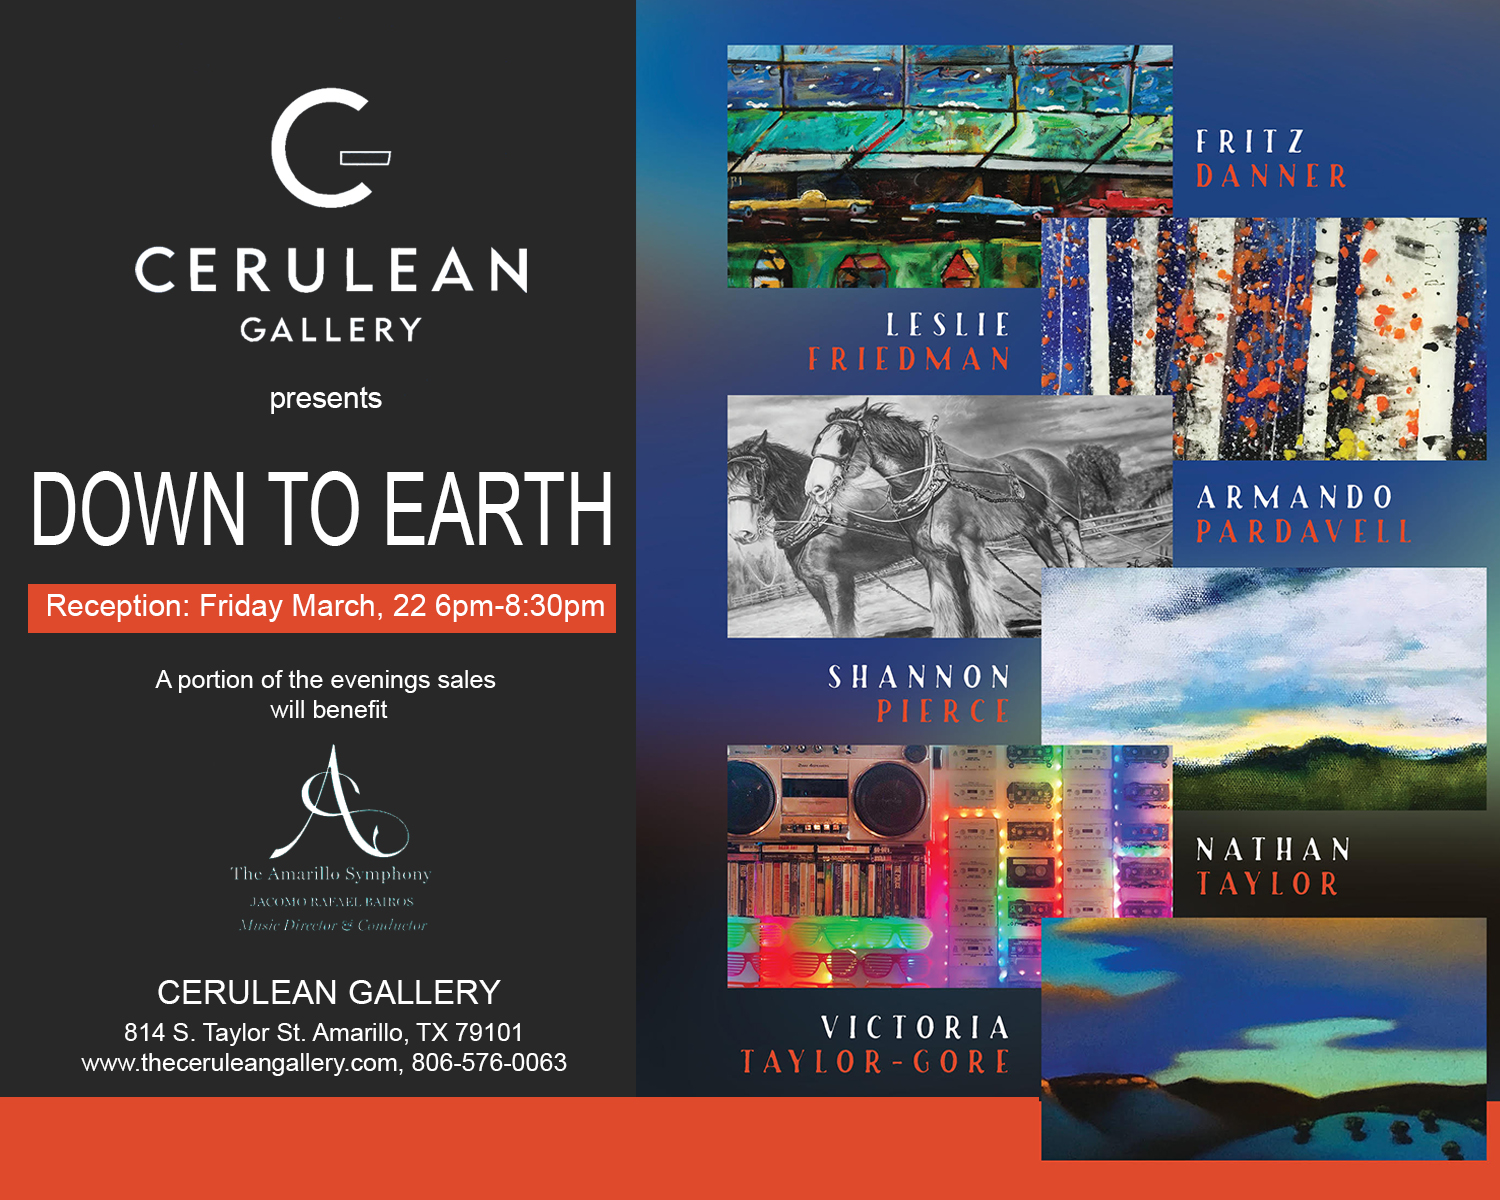 cerulean gallery- down to earth.jpg